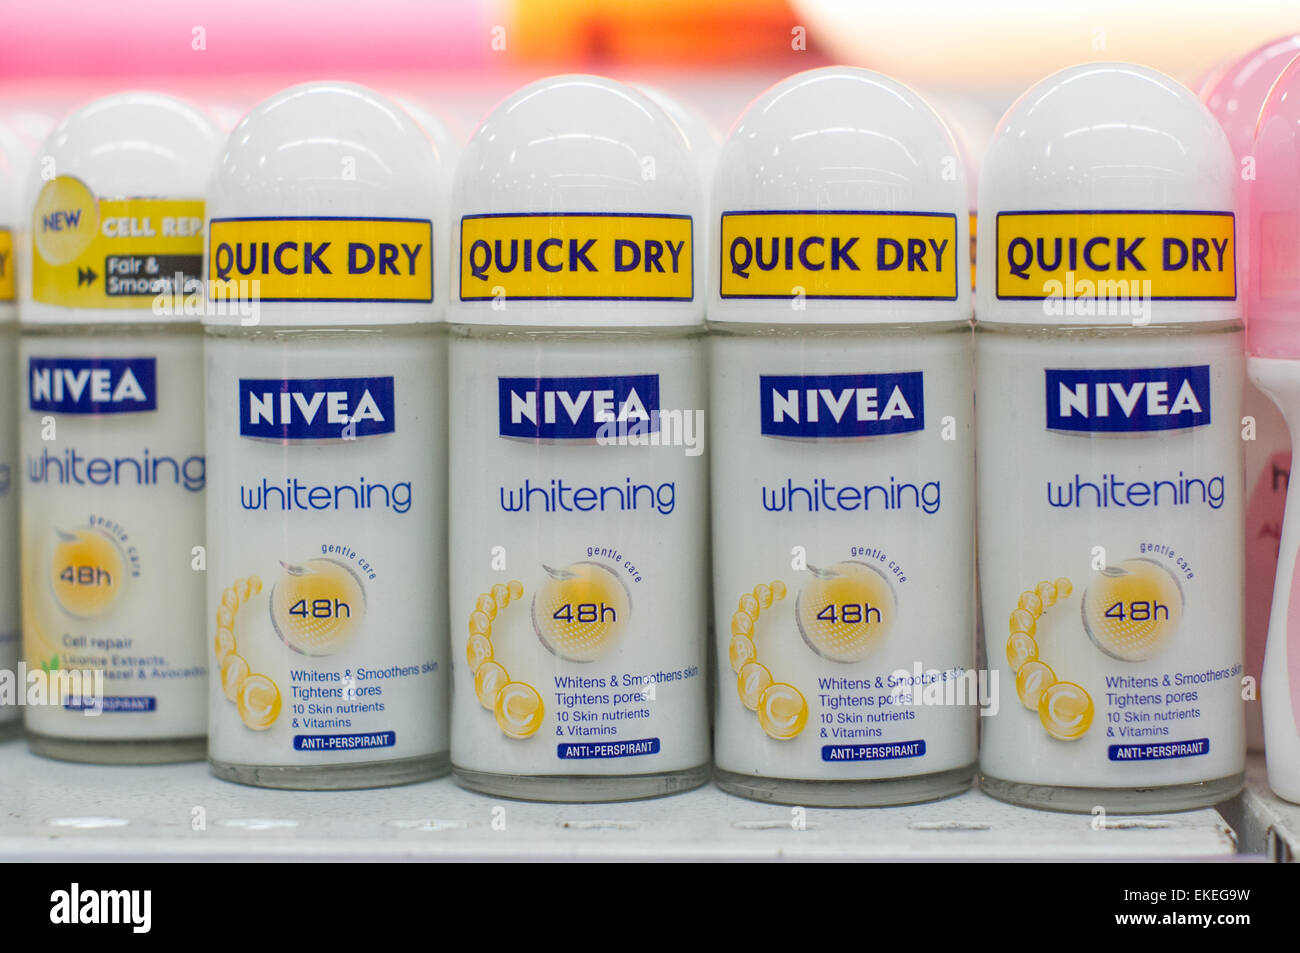 Stock Photo - Nivea whitening product on shelf of grocery market